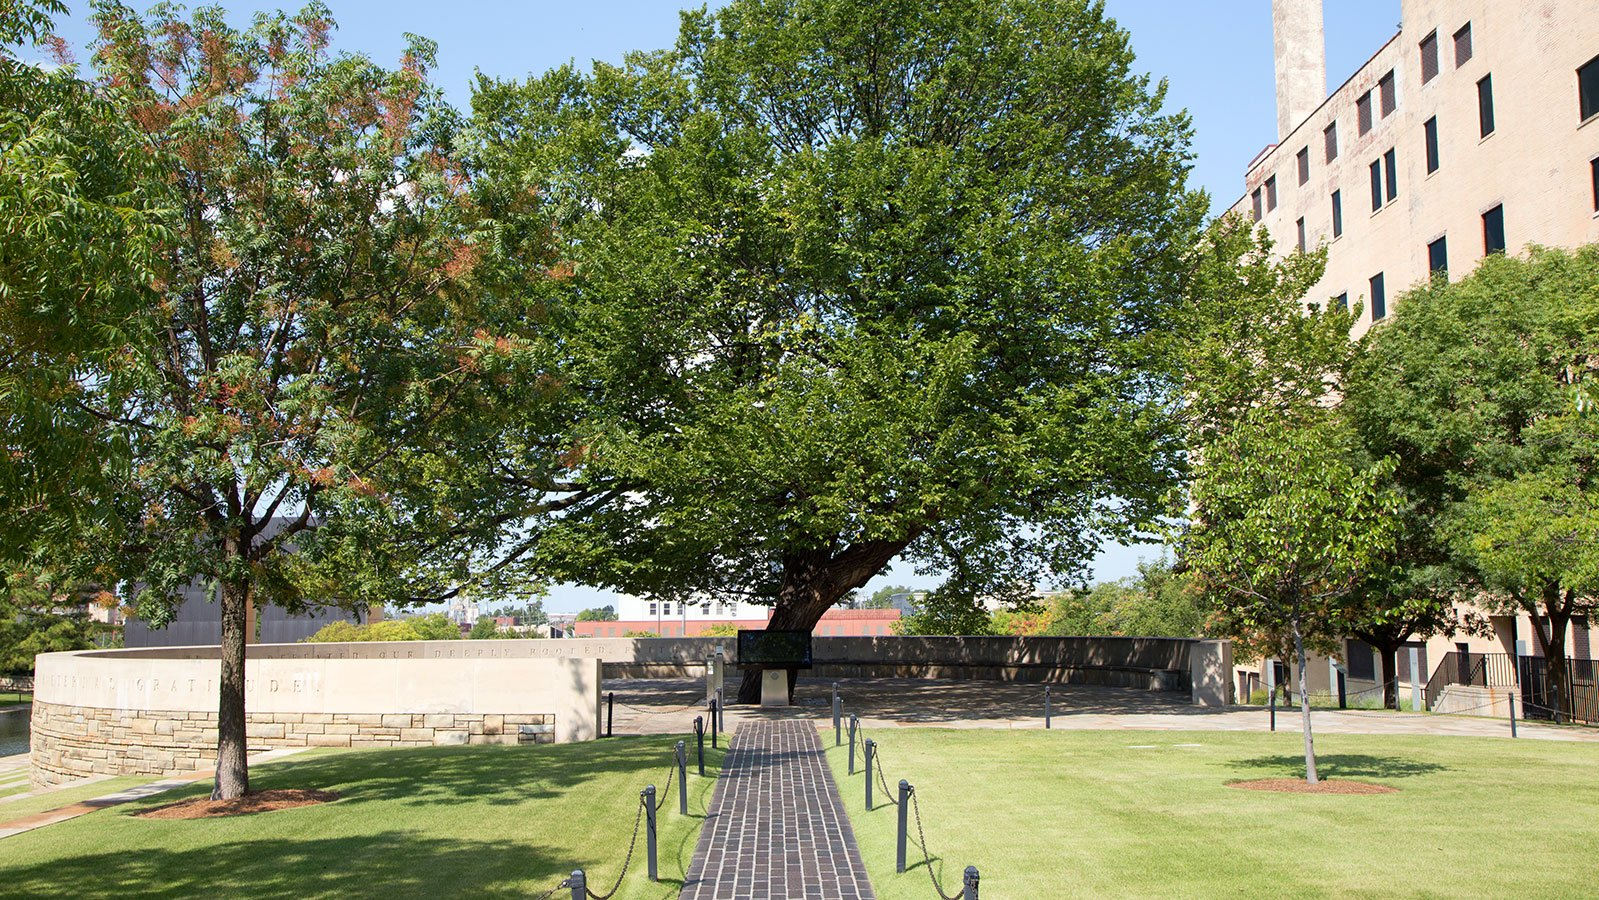 The Survivor Tree, an American elm, withstood the full force of the 1995 attack. It came to be a living symbol of the resilience of the survivors of the Oklahoma City bombing